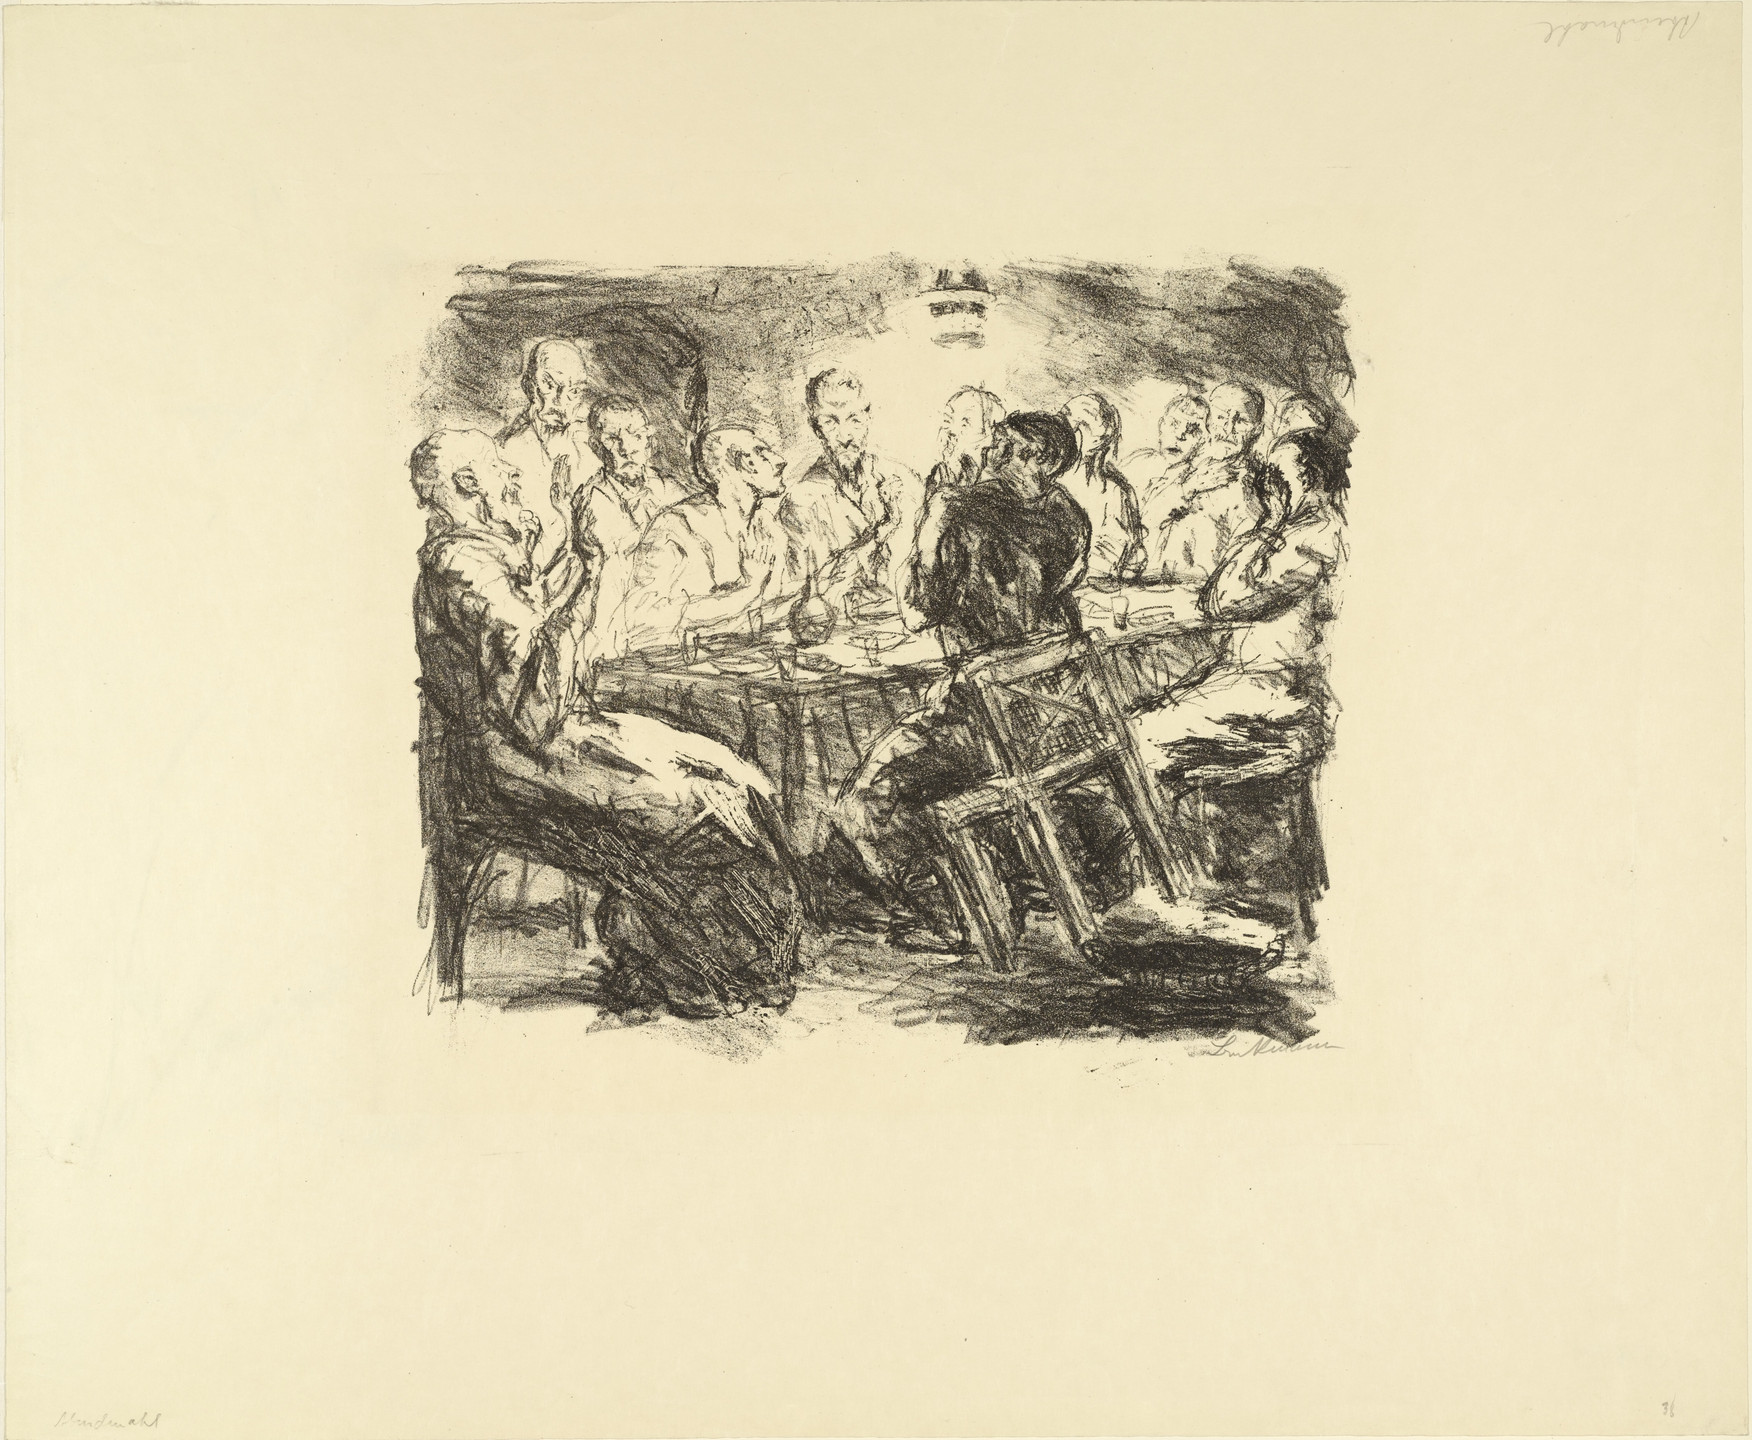 Max Beckmann. The Last Supper (Das Abendmahl) from Six Lithographs to the New Testament (Sechs Lithographien zum Neuen Testament). (1911, published c. 1917)